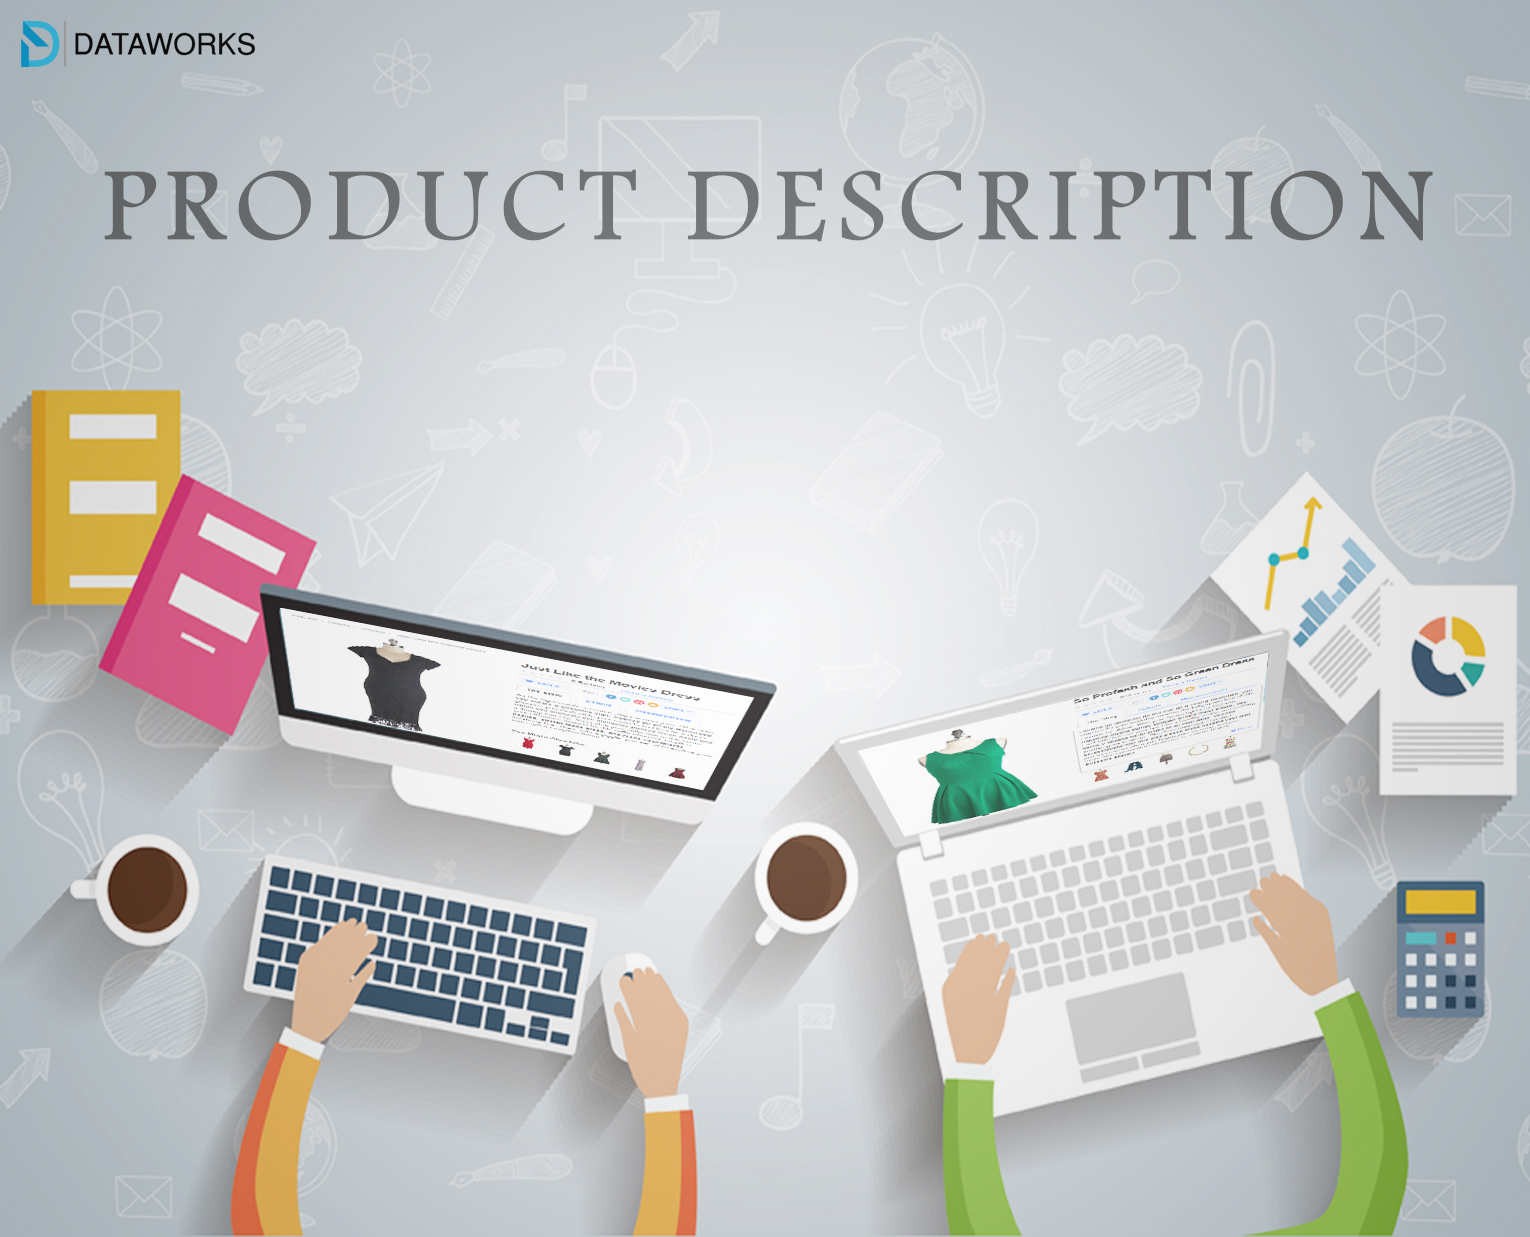 Tips to follow while writing Product Description